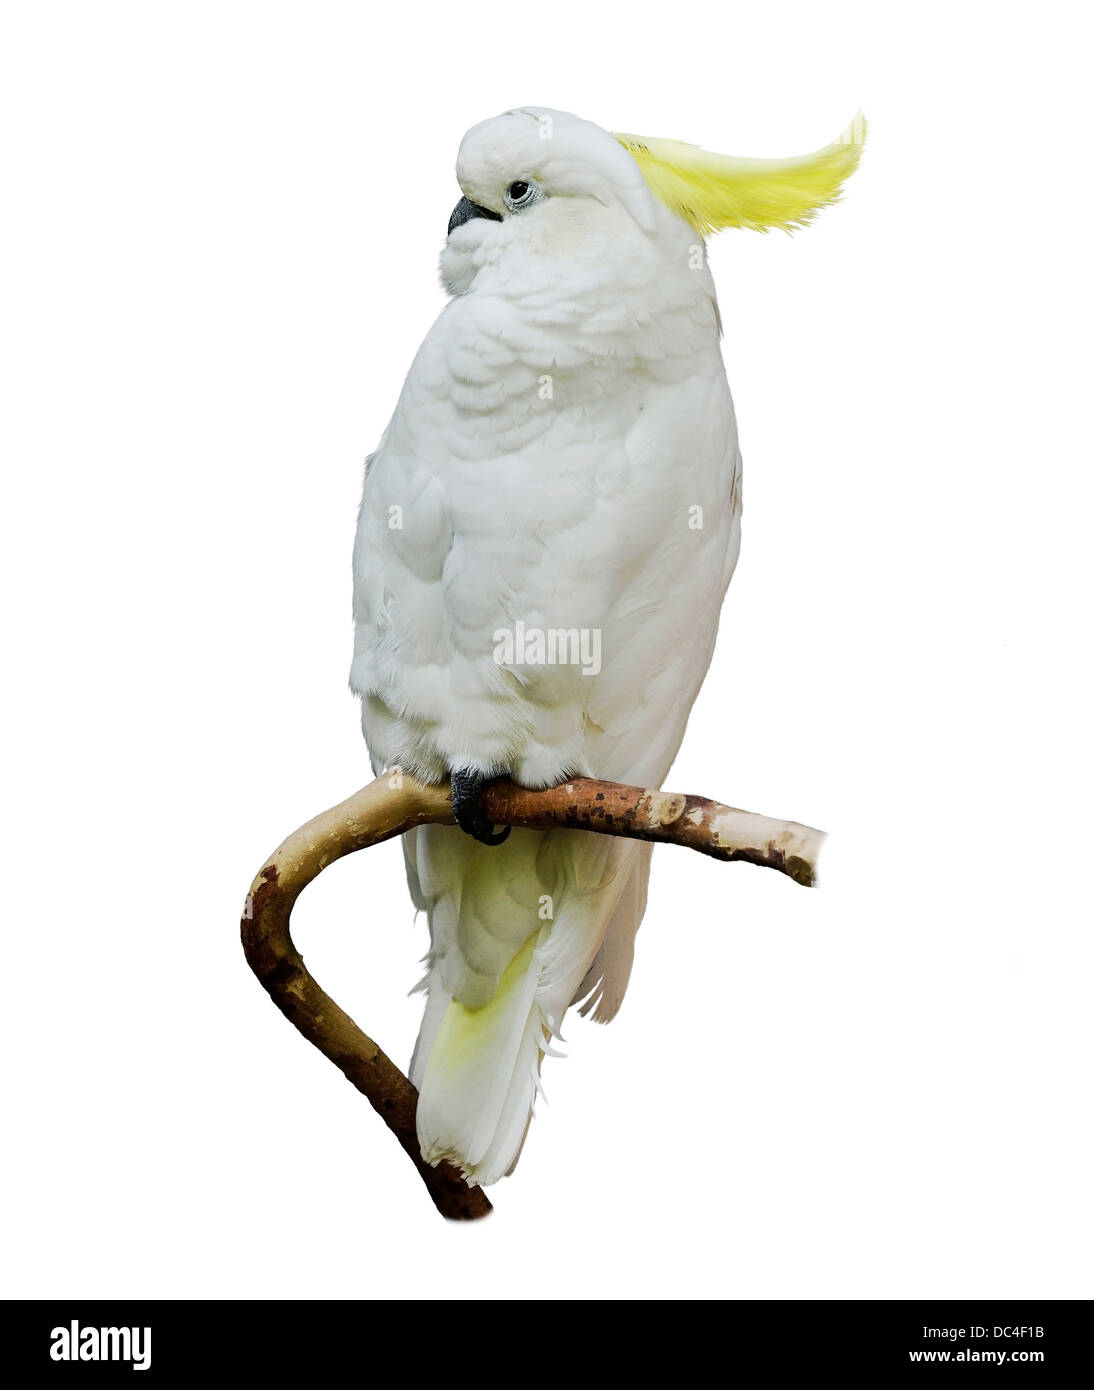 Yellow-Crested Cockatoo On White Background - Stock Image